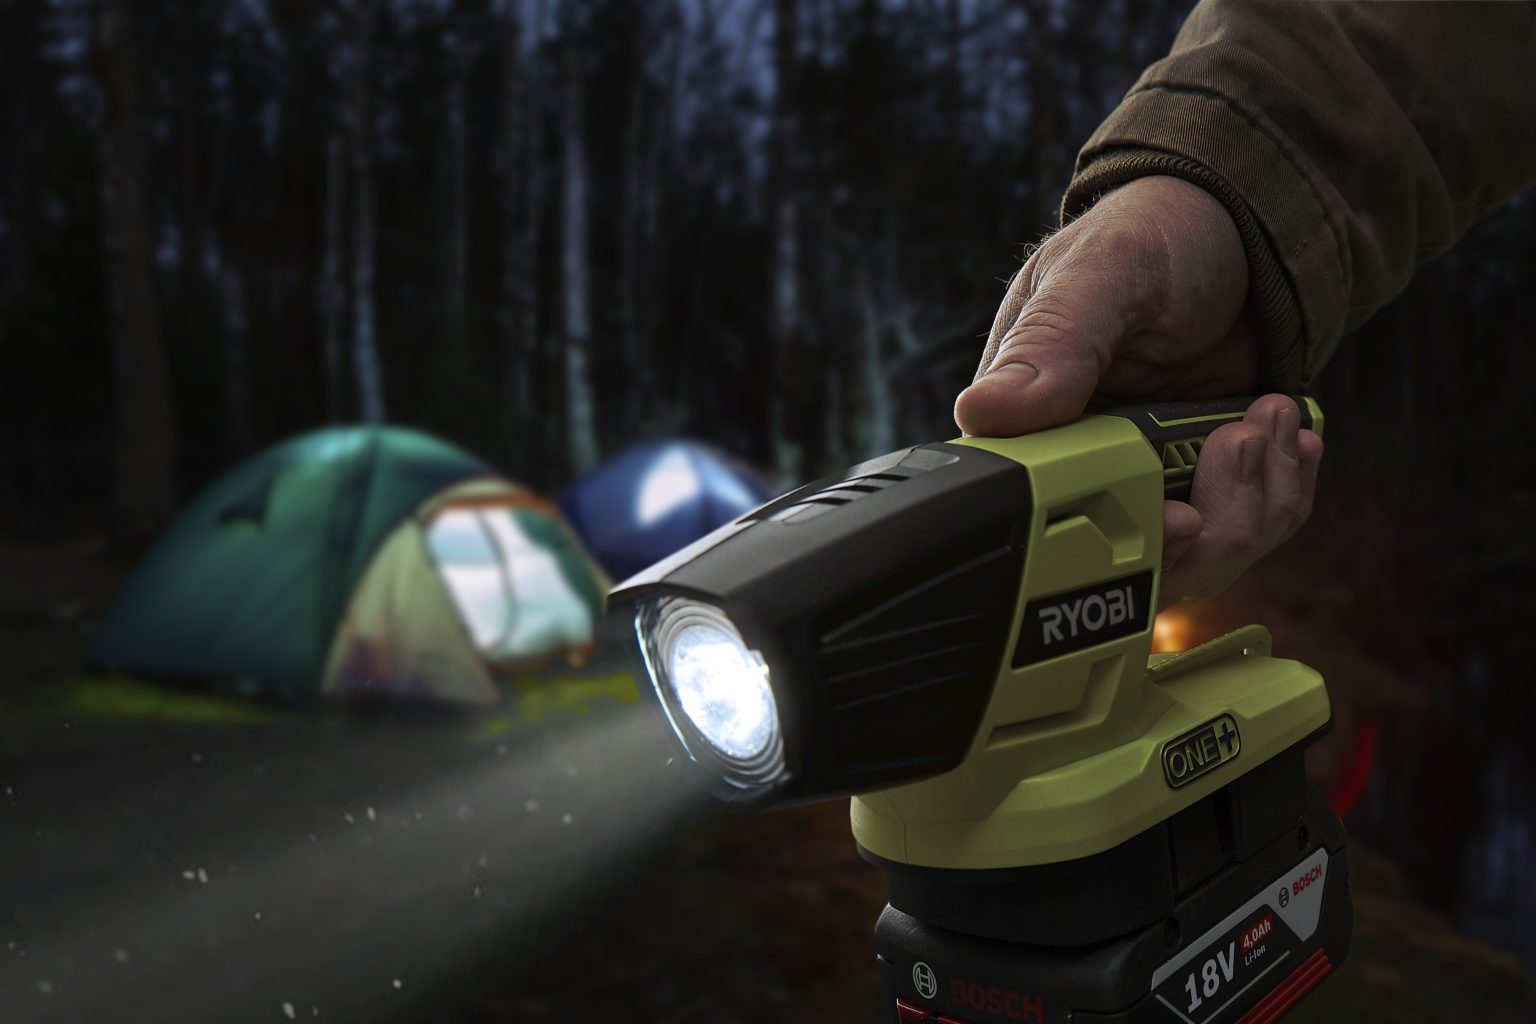 Ryobi One+ cordless LED torch with Bosch Professional 18V battery